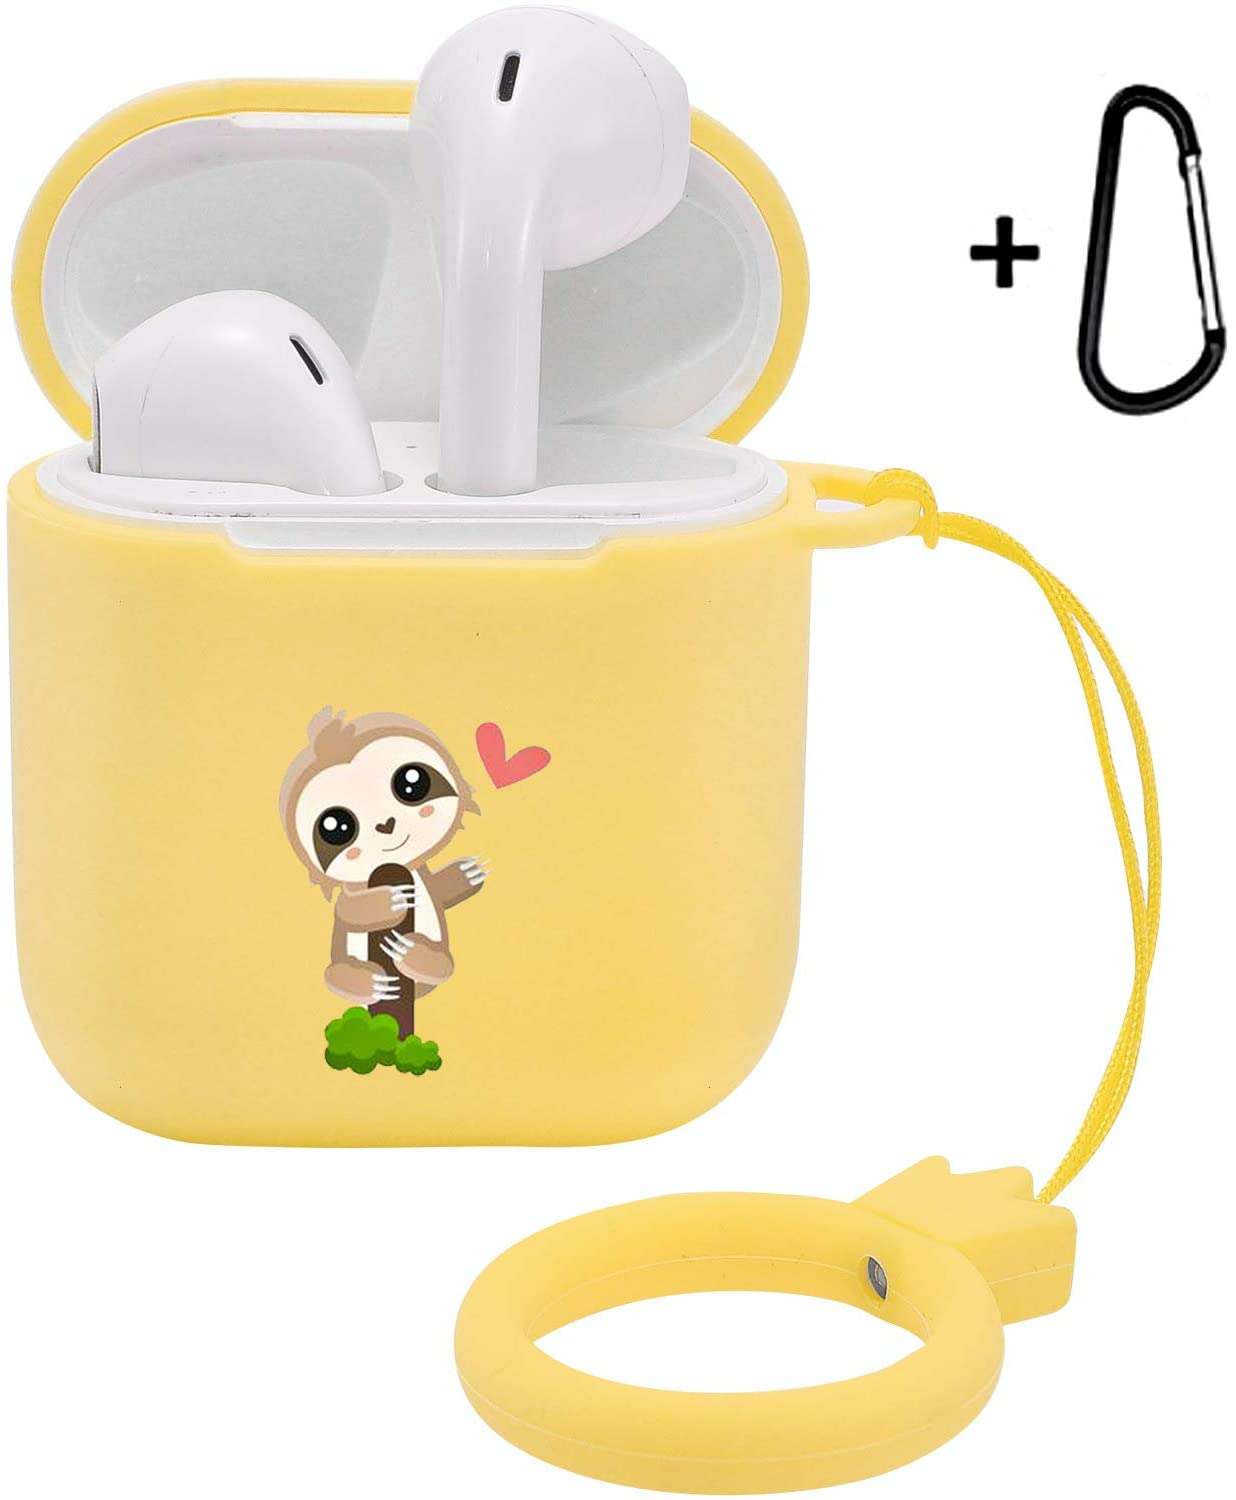 LuGeKe Compatible with Airpods 1&2 Soft Silicone Cartoon Case,Luxury Funny Cute Stylish Cartoon Designer Cute Cover for Girls Boys Kids Men Women Air pods (Support Wireless Charge,Happy Sloth)